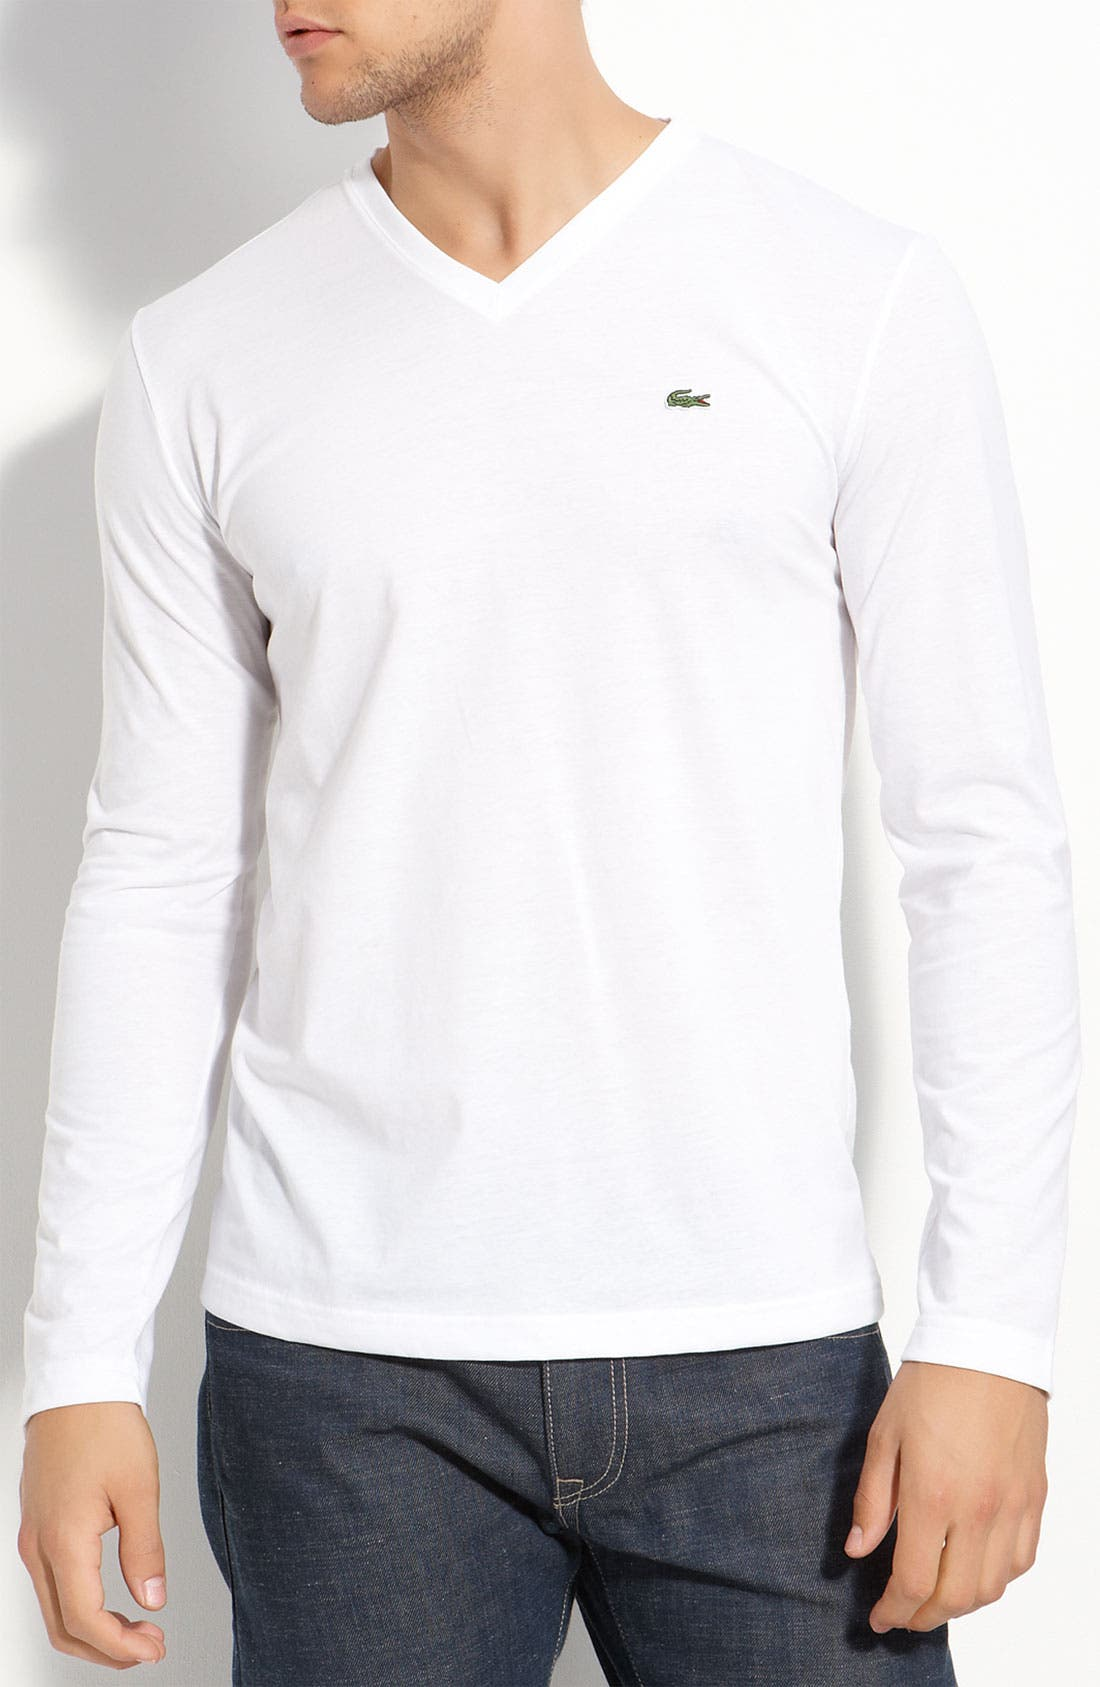 Main Image - Lacoste Pima Cotton V-Neck T-Shirt